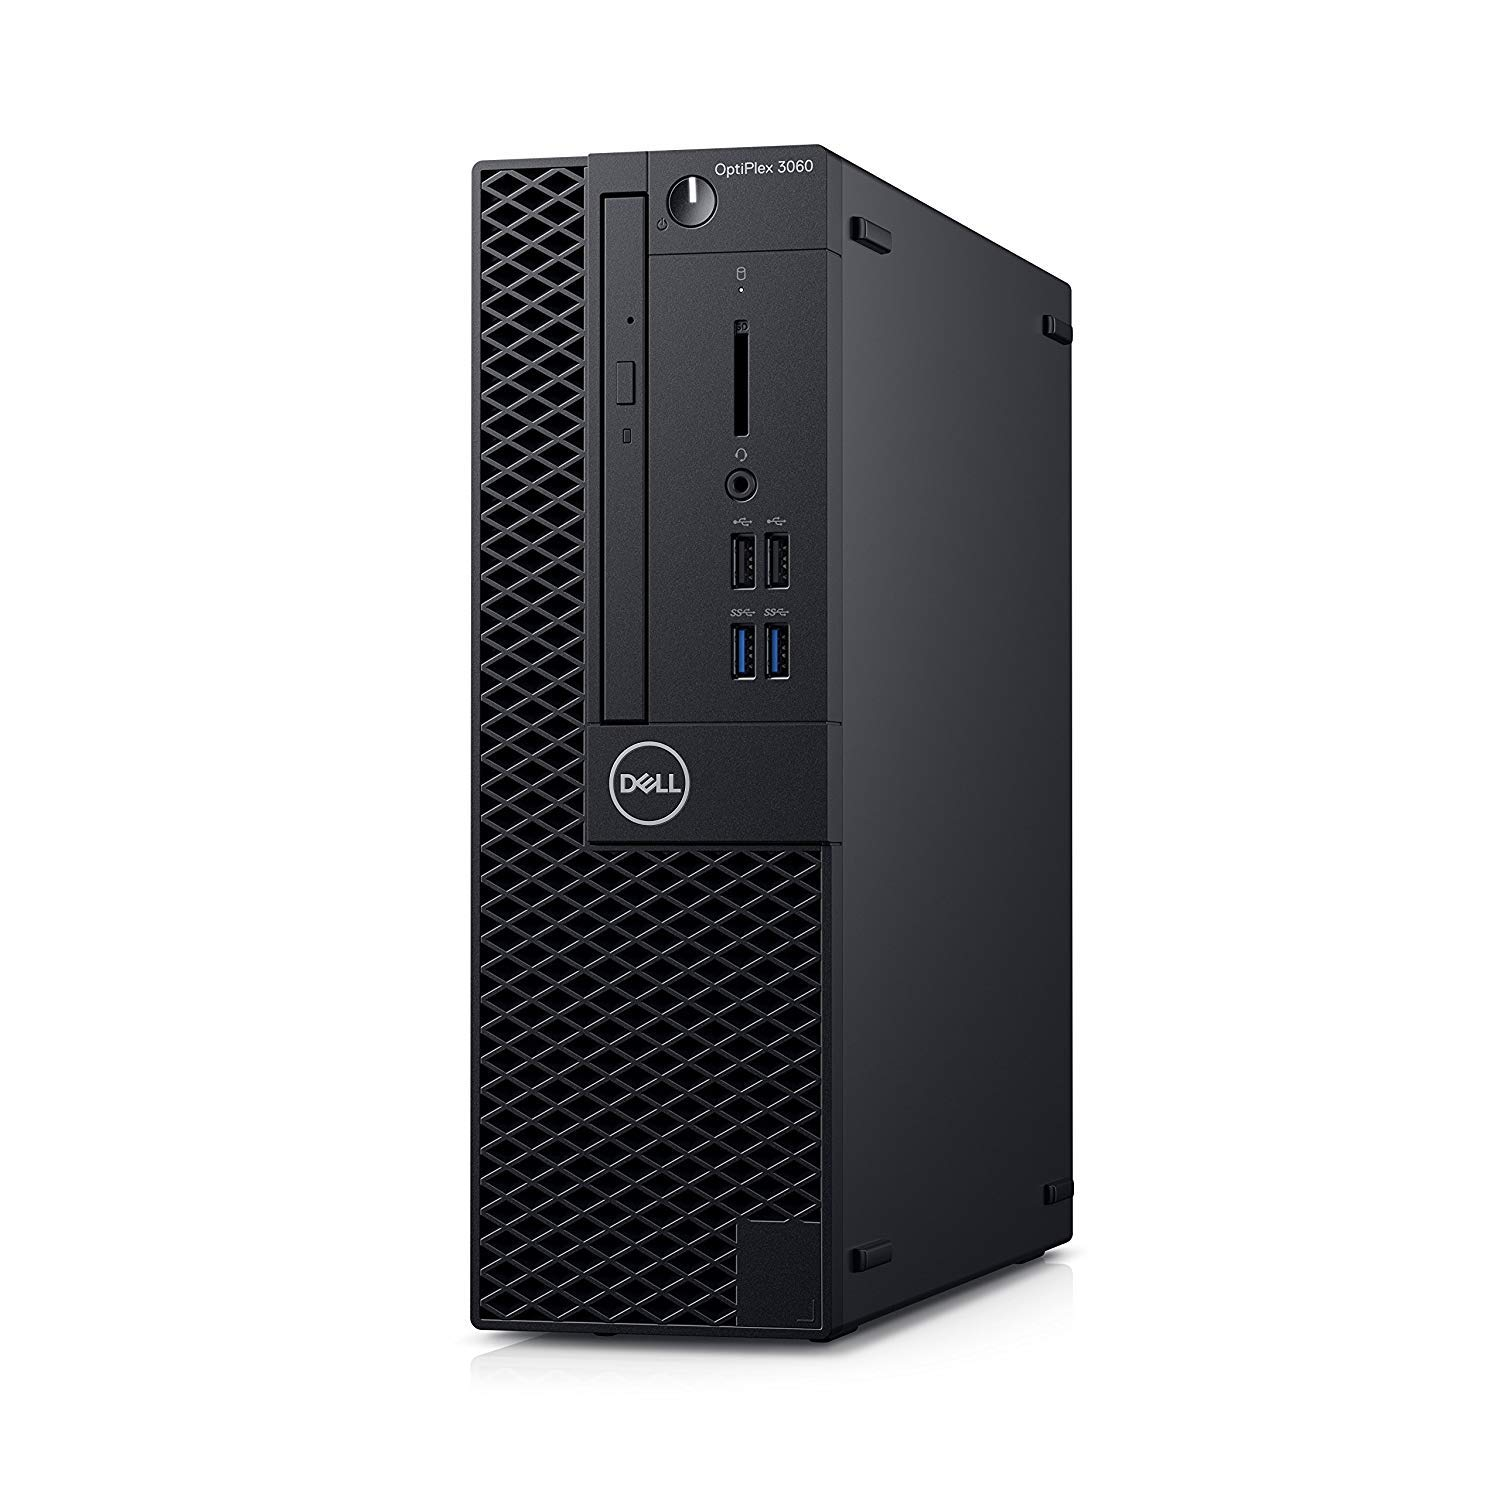 Optiplex 3060 SFF Desktop PC, Intel i5-8500 3.0GHz 6 Core, 16GB DDR4, 500GB SSD, WiFi, Win 10 Pro, Keyboard, Mouse, 3 Years Warranty by AVENTIS